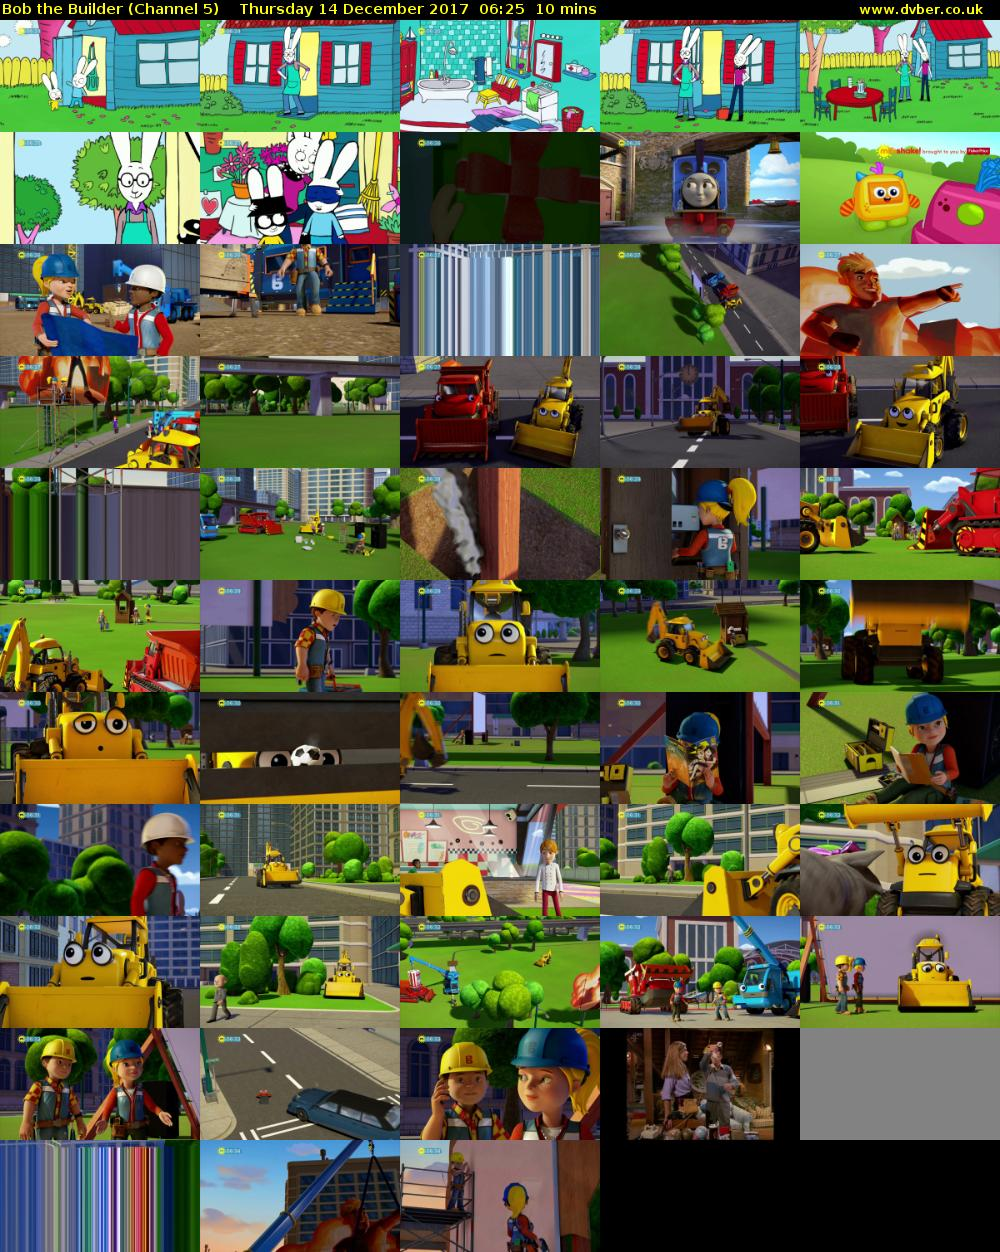 Bob the Builder (Channel 5) Thursday 14 December 2017 06:25 - 06:35